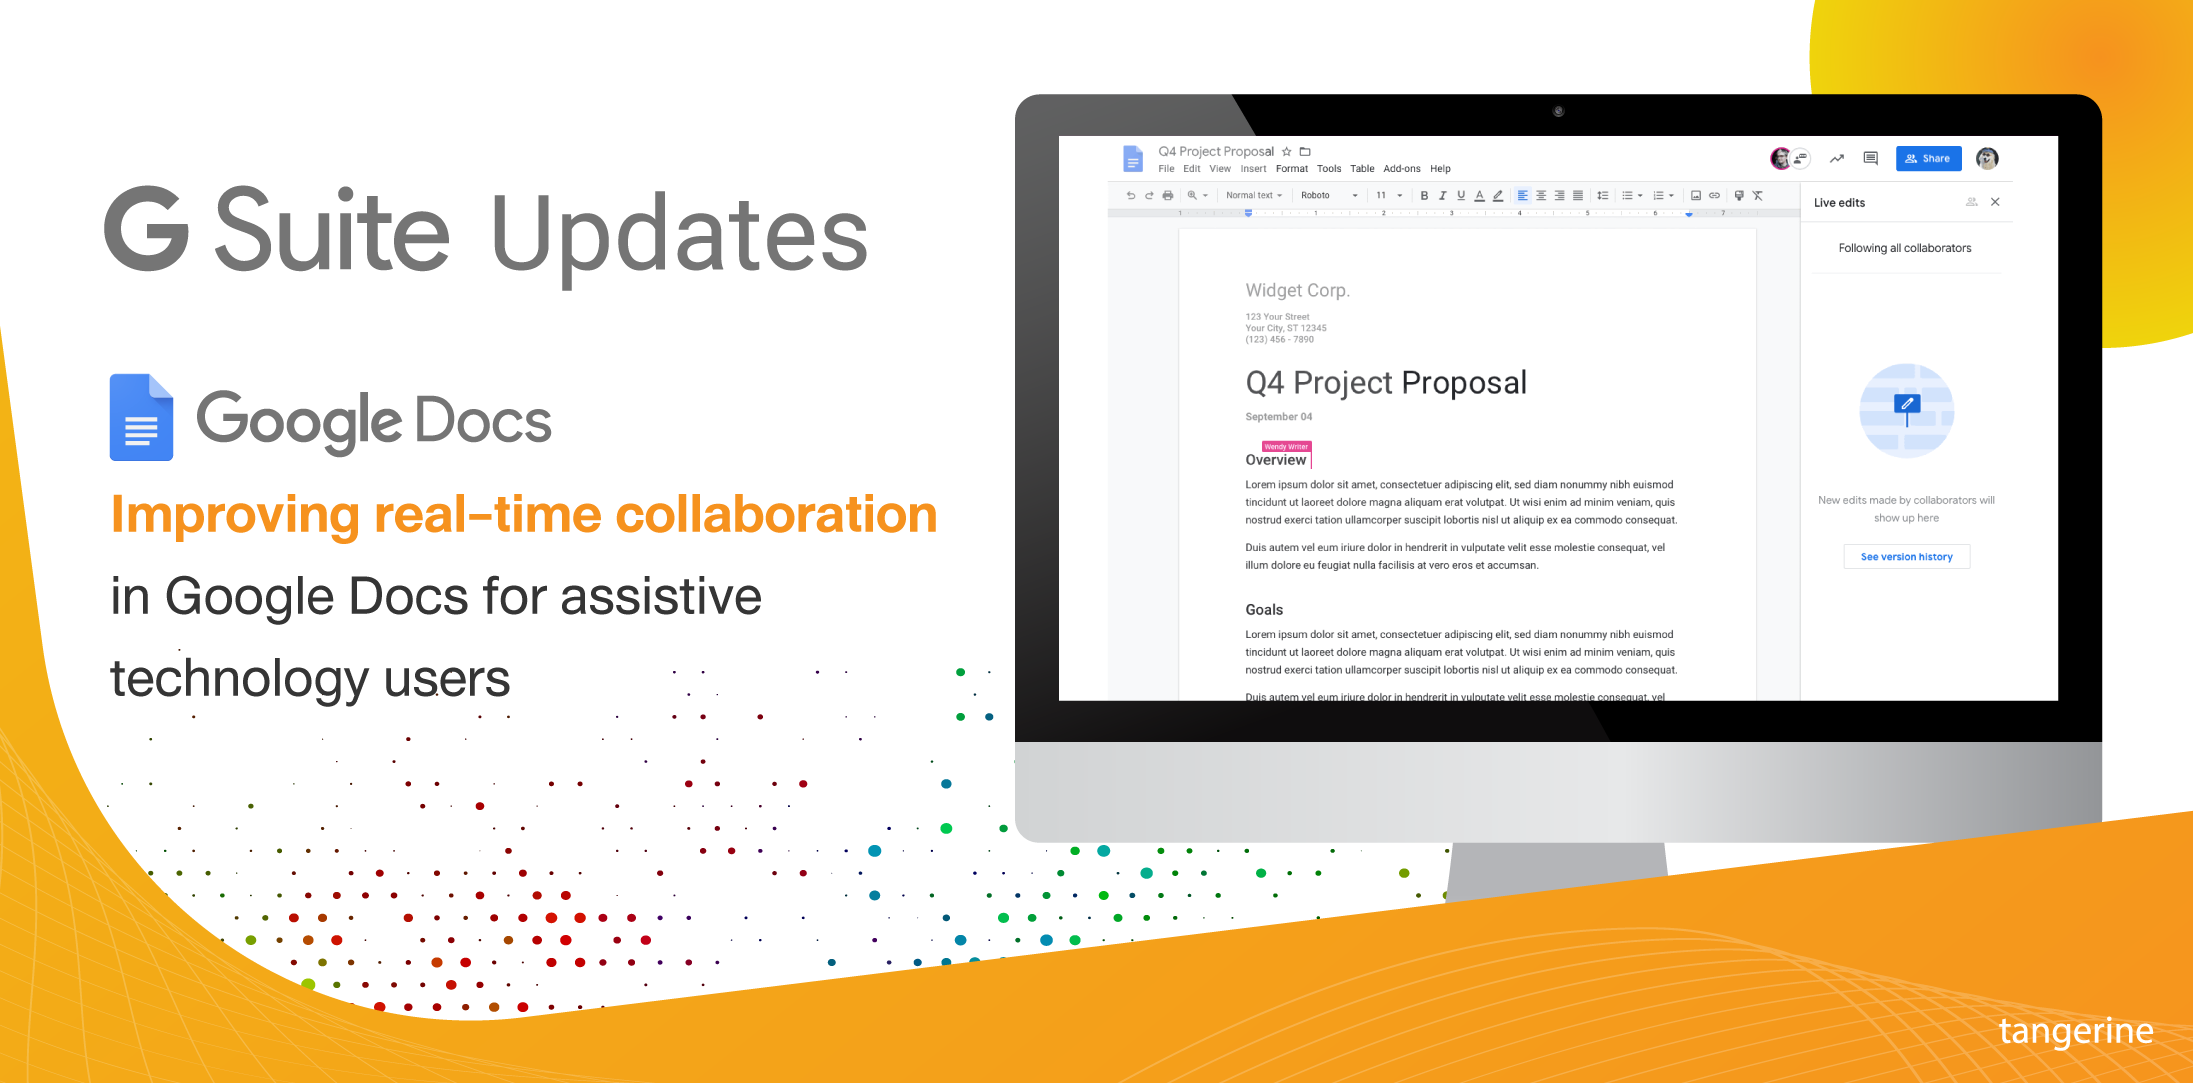 G Suite Live Editions